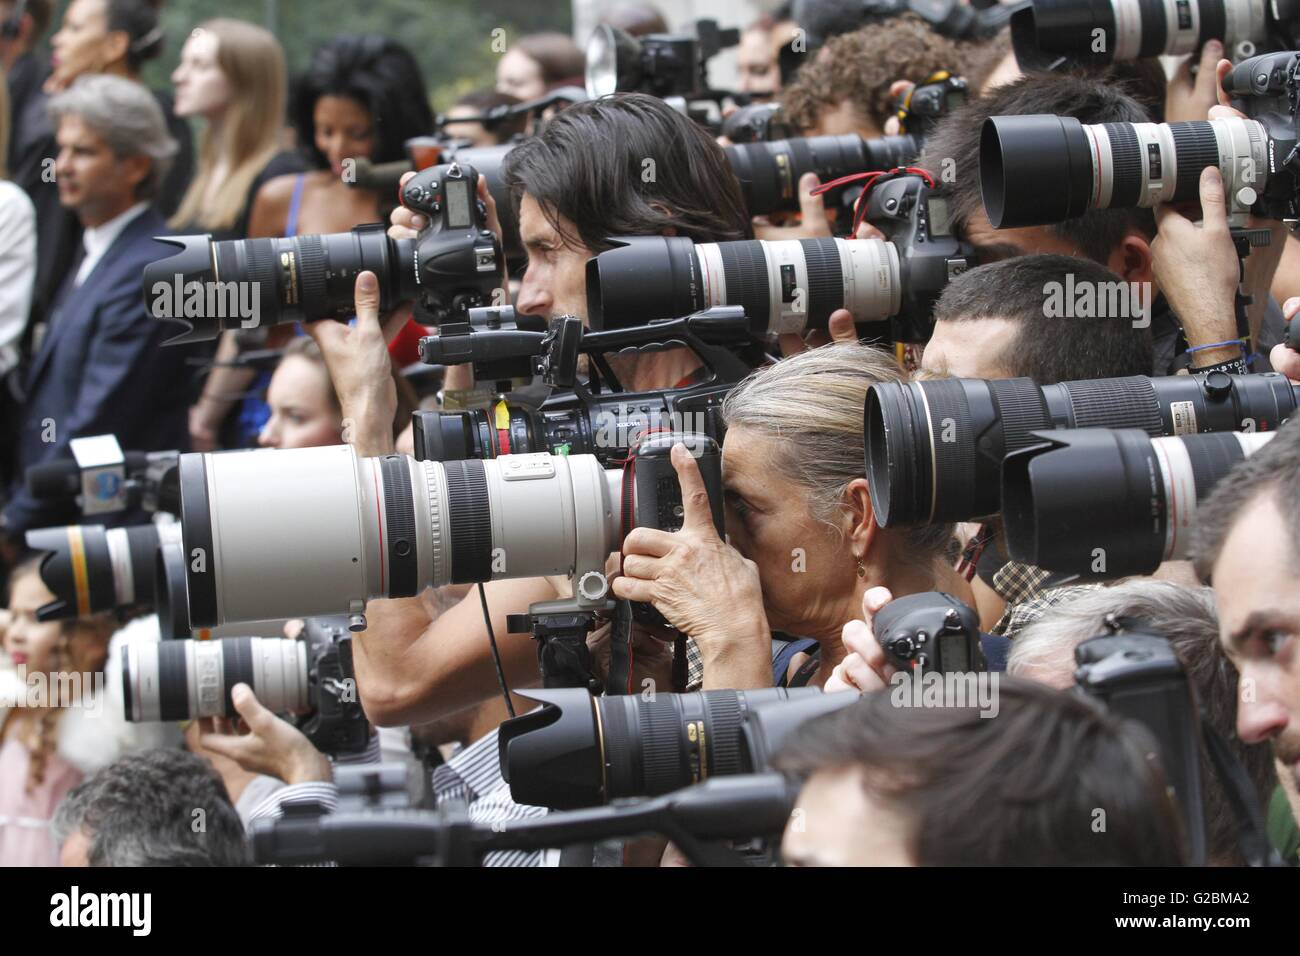 Photographers crammed into a pen at a Burberry fashion show during London Fashion Week. Stock Photo